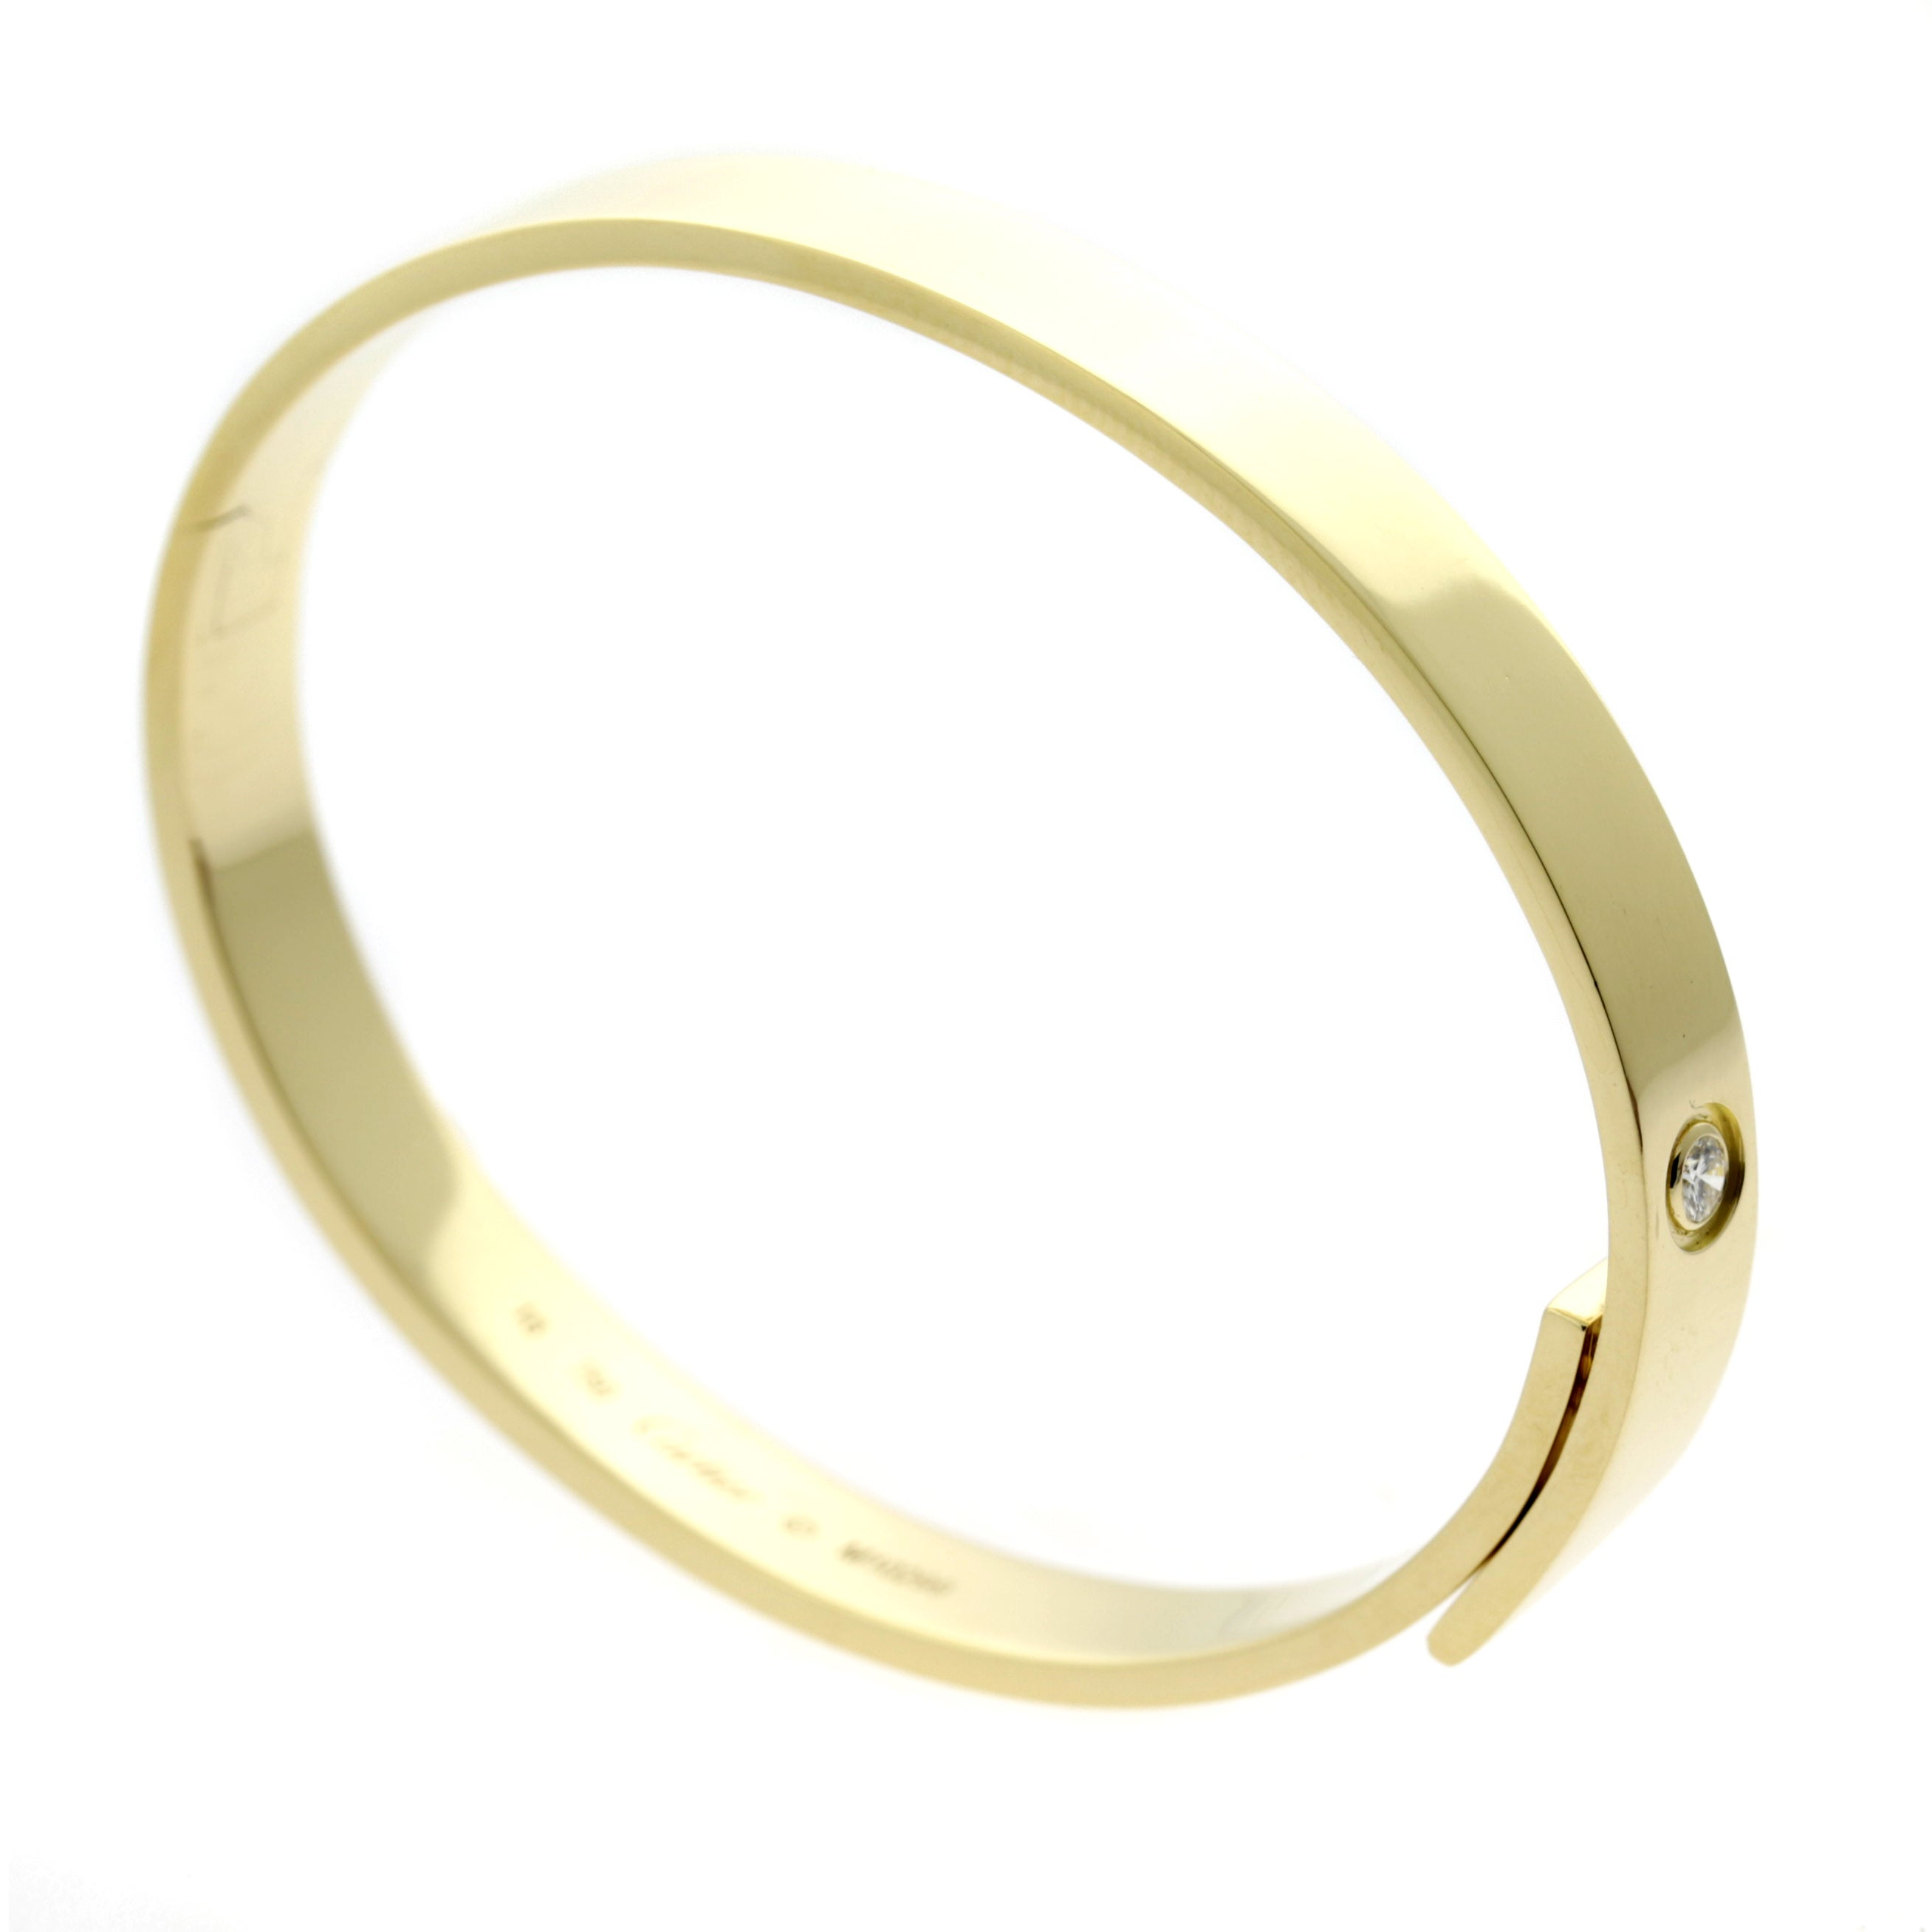 gold link jewelry roberto coin chain yellow gallery lyst cuff white bangles product bangle bracelet diamond